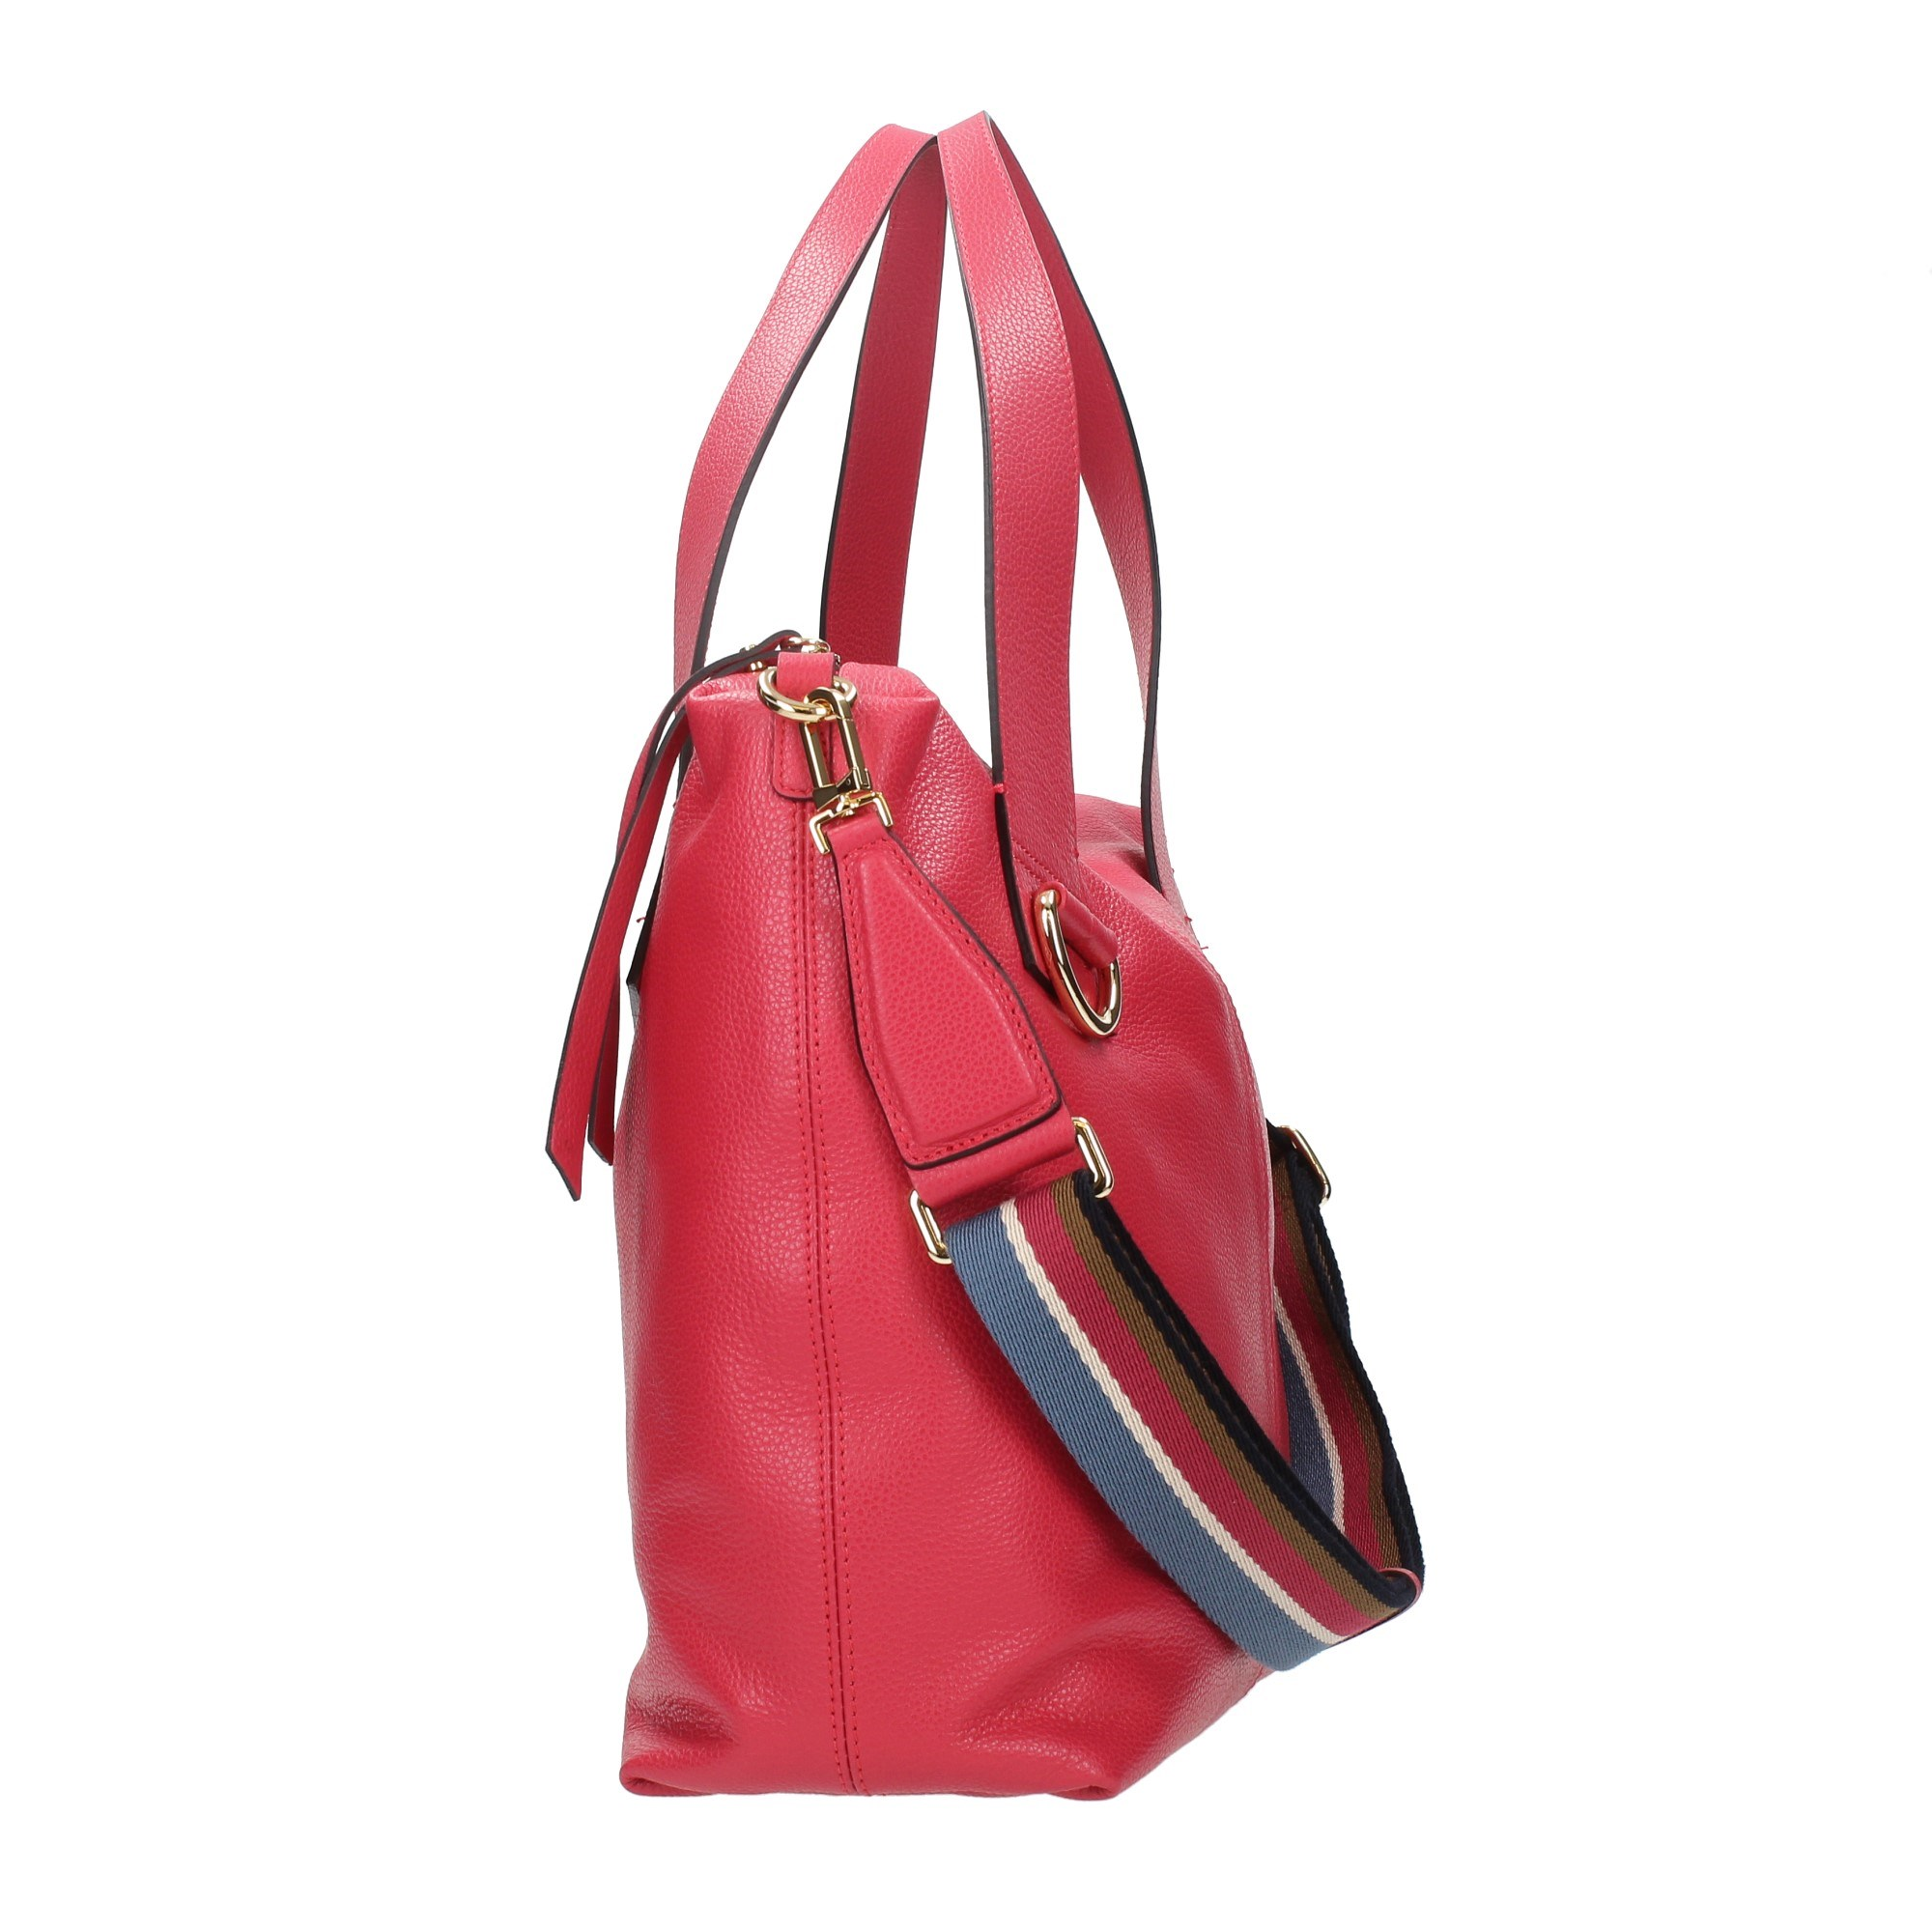 Gianni Chiarini Accessories Women Shoulder Bags fuchsia BS7252/20PE OLX-NA